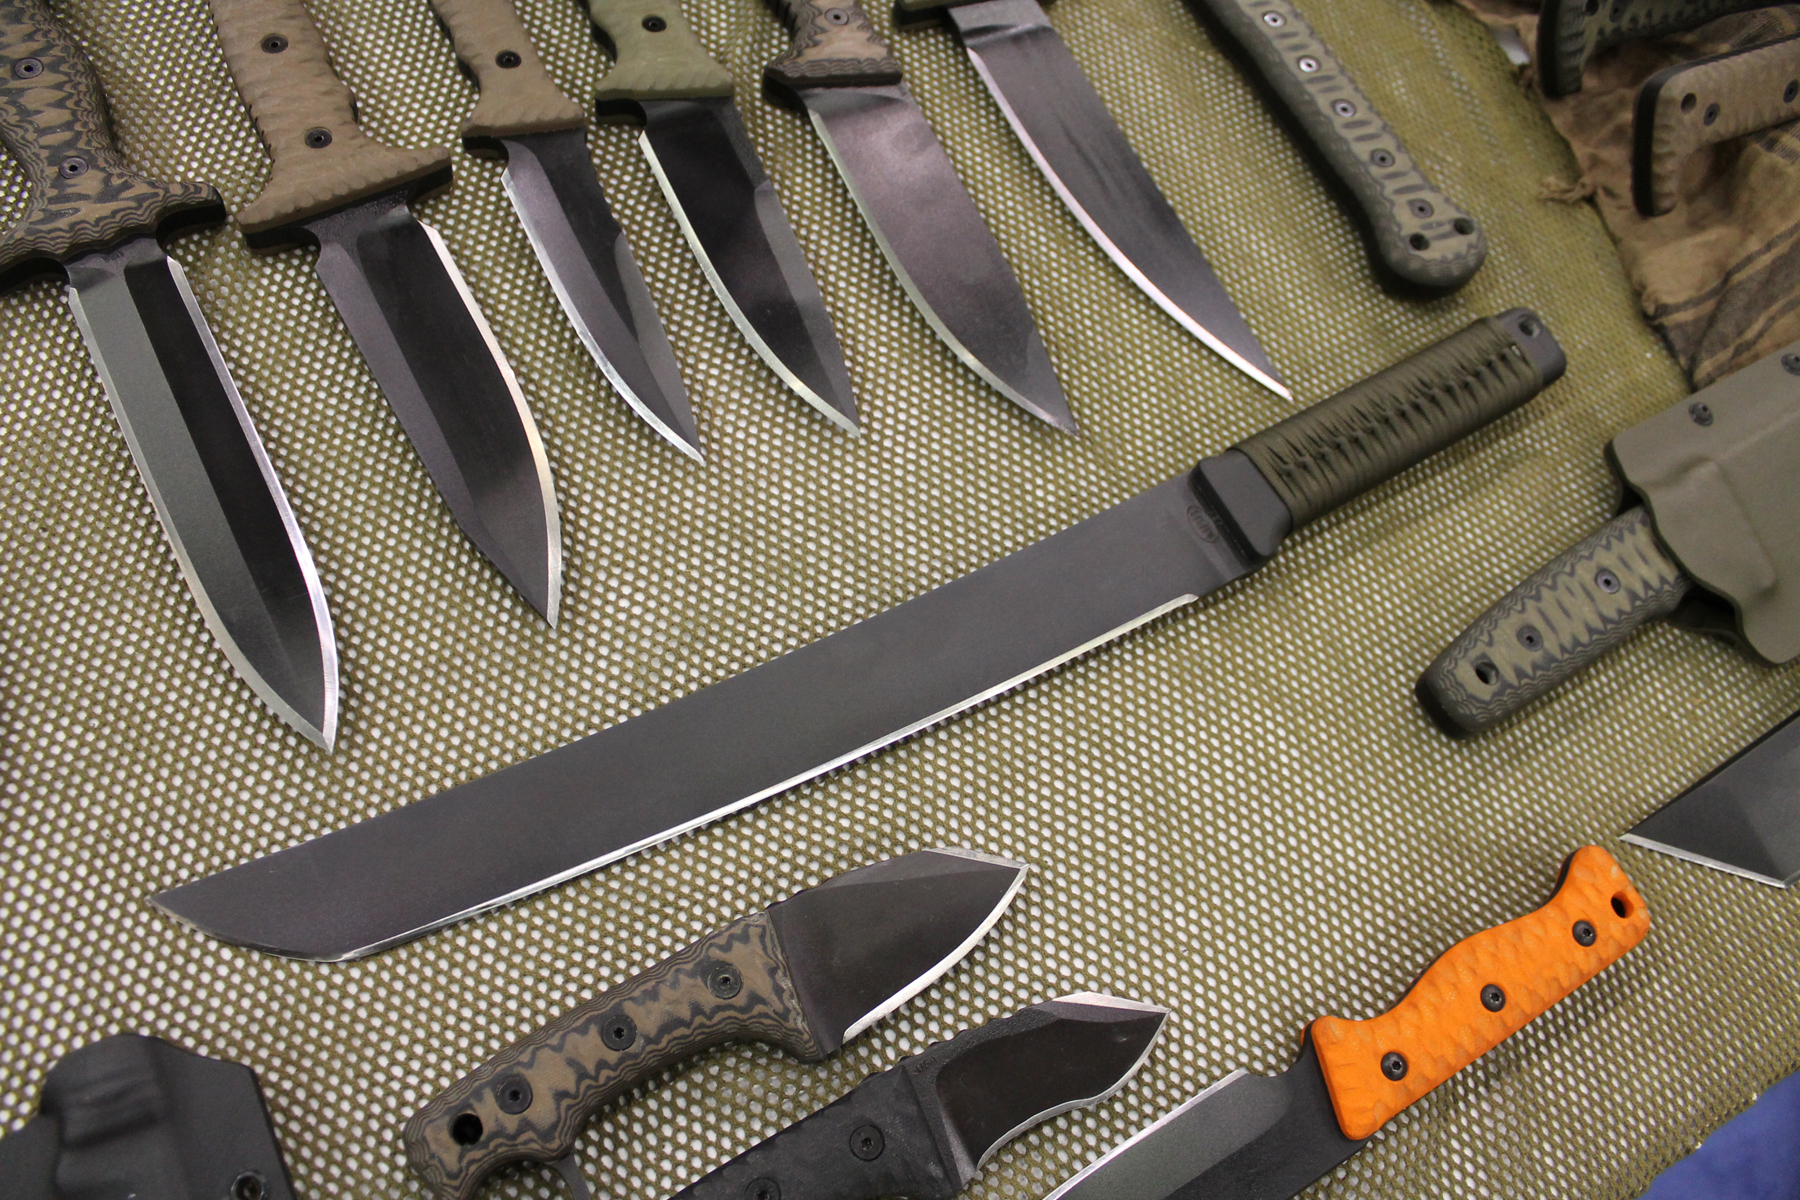 Miller Brothers Blades Serious Heavy Use Knives